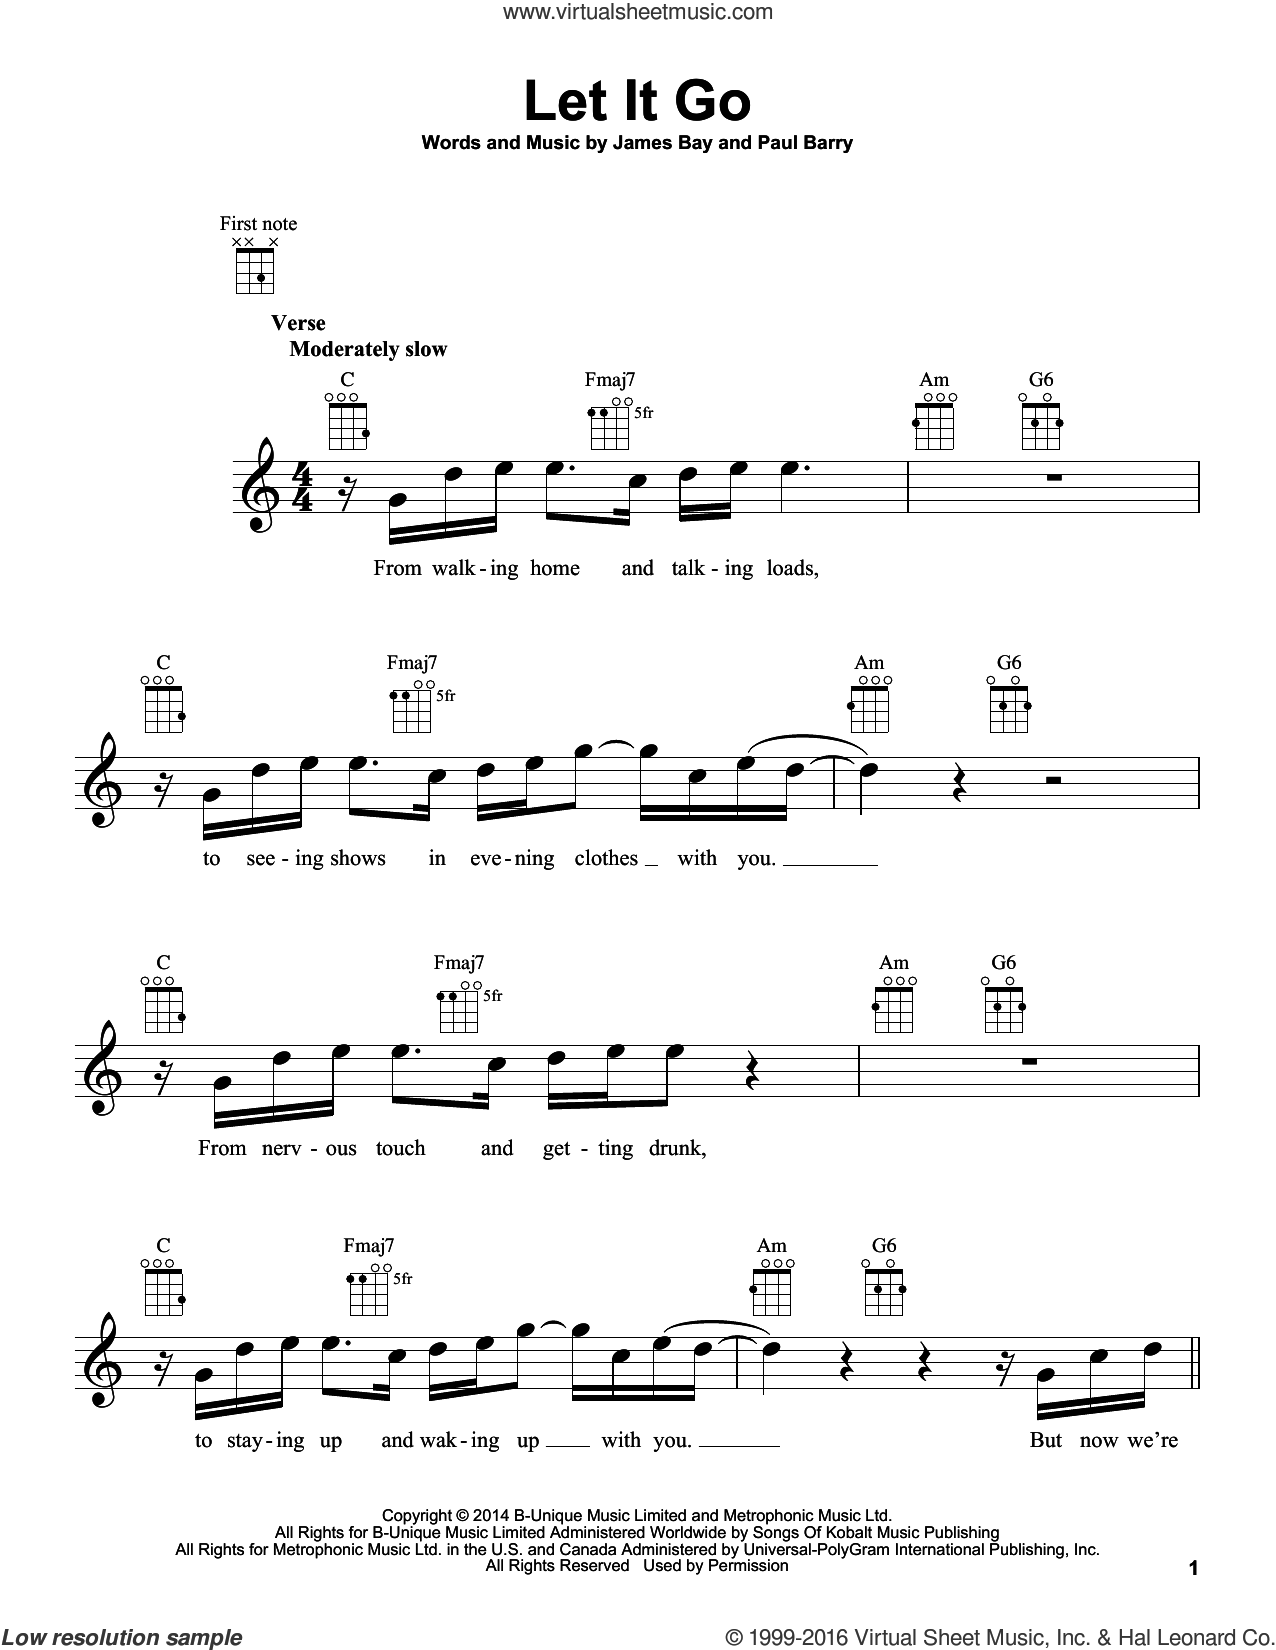 Let It Go sheet music for ukulele by James Bay and Paul Barry, intermediate skill level